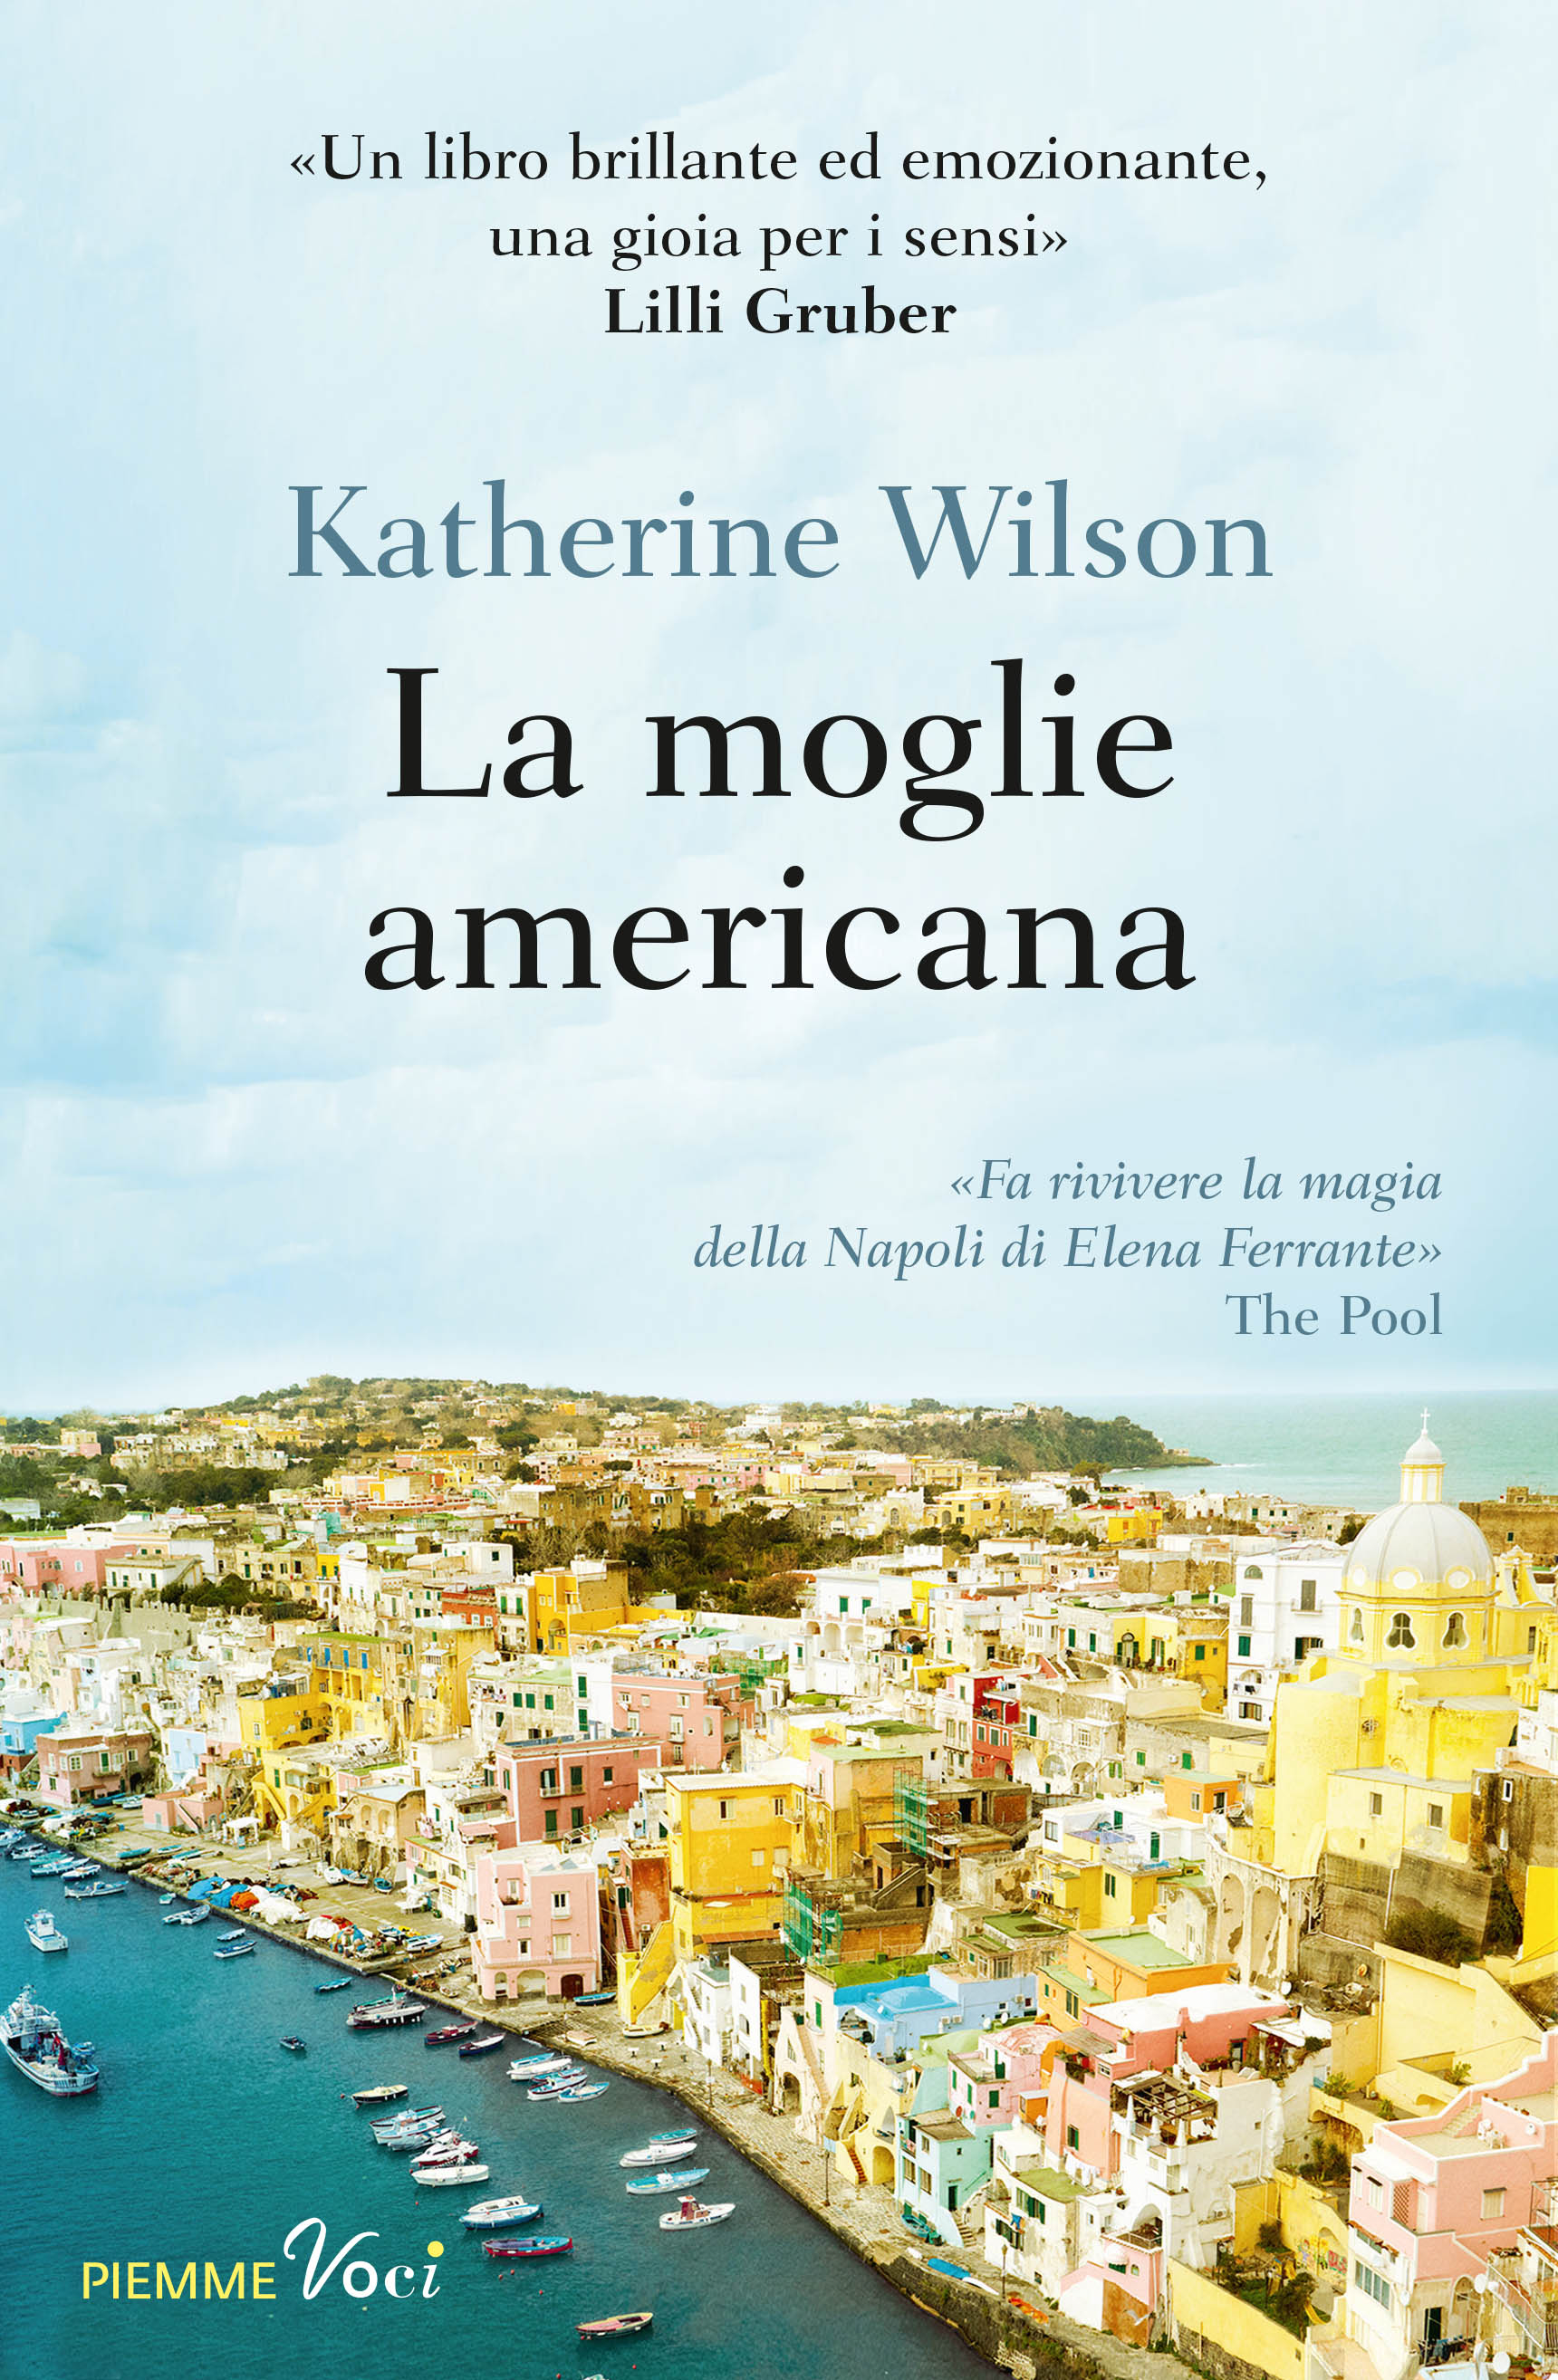 Italian cover of Only in Naples by Katherine Wilson